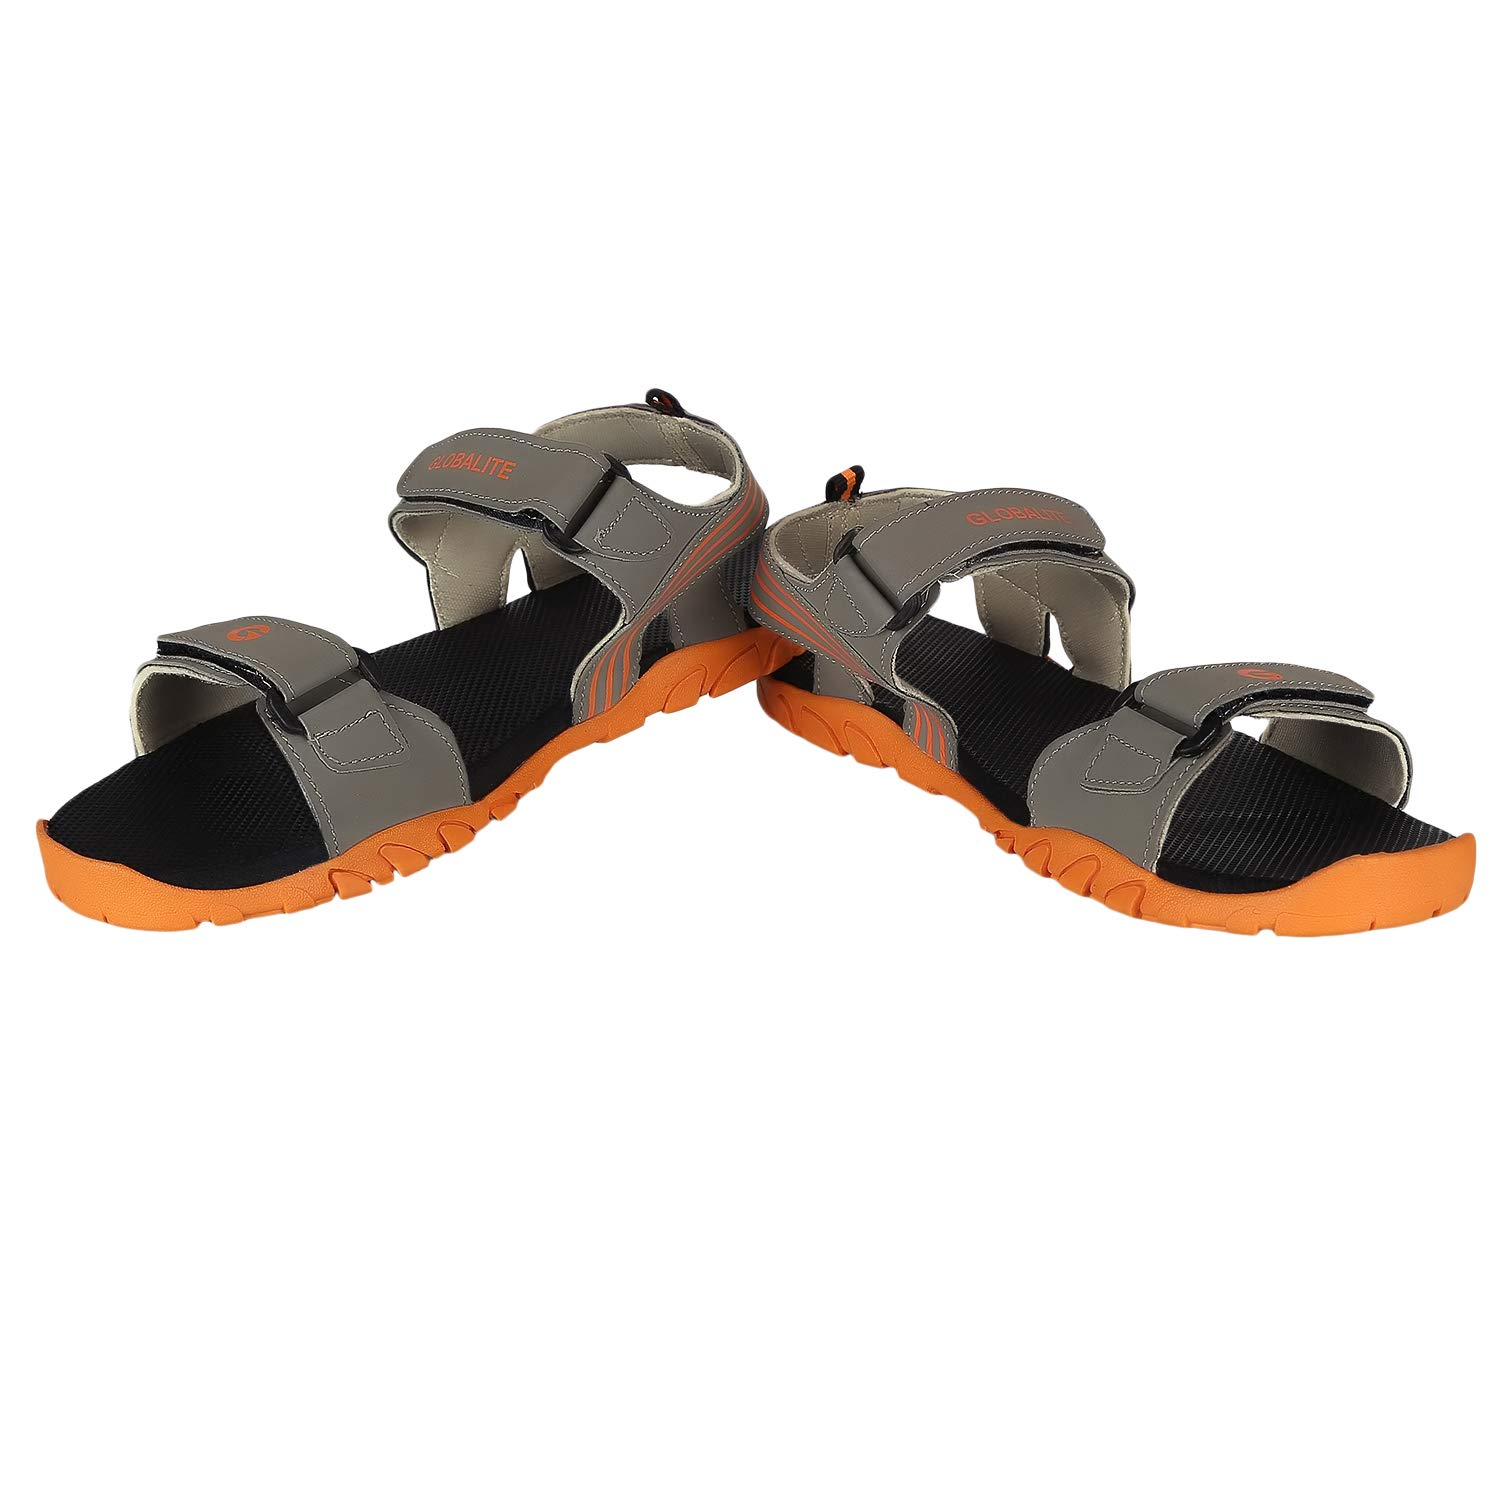 868ec975b Globalite Men s Casual Outdoor Sandals (6UK)  Buy Online at Low Prices in  India - Amazon.in